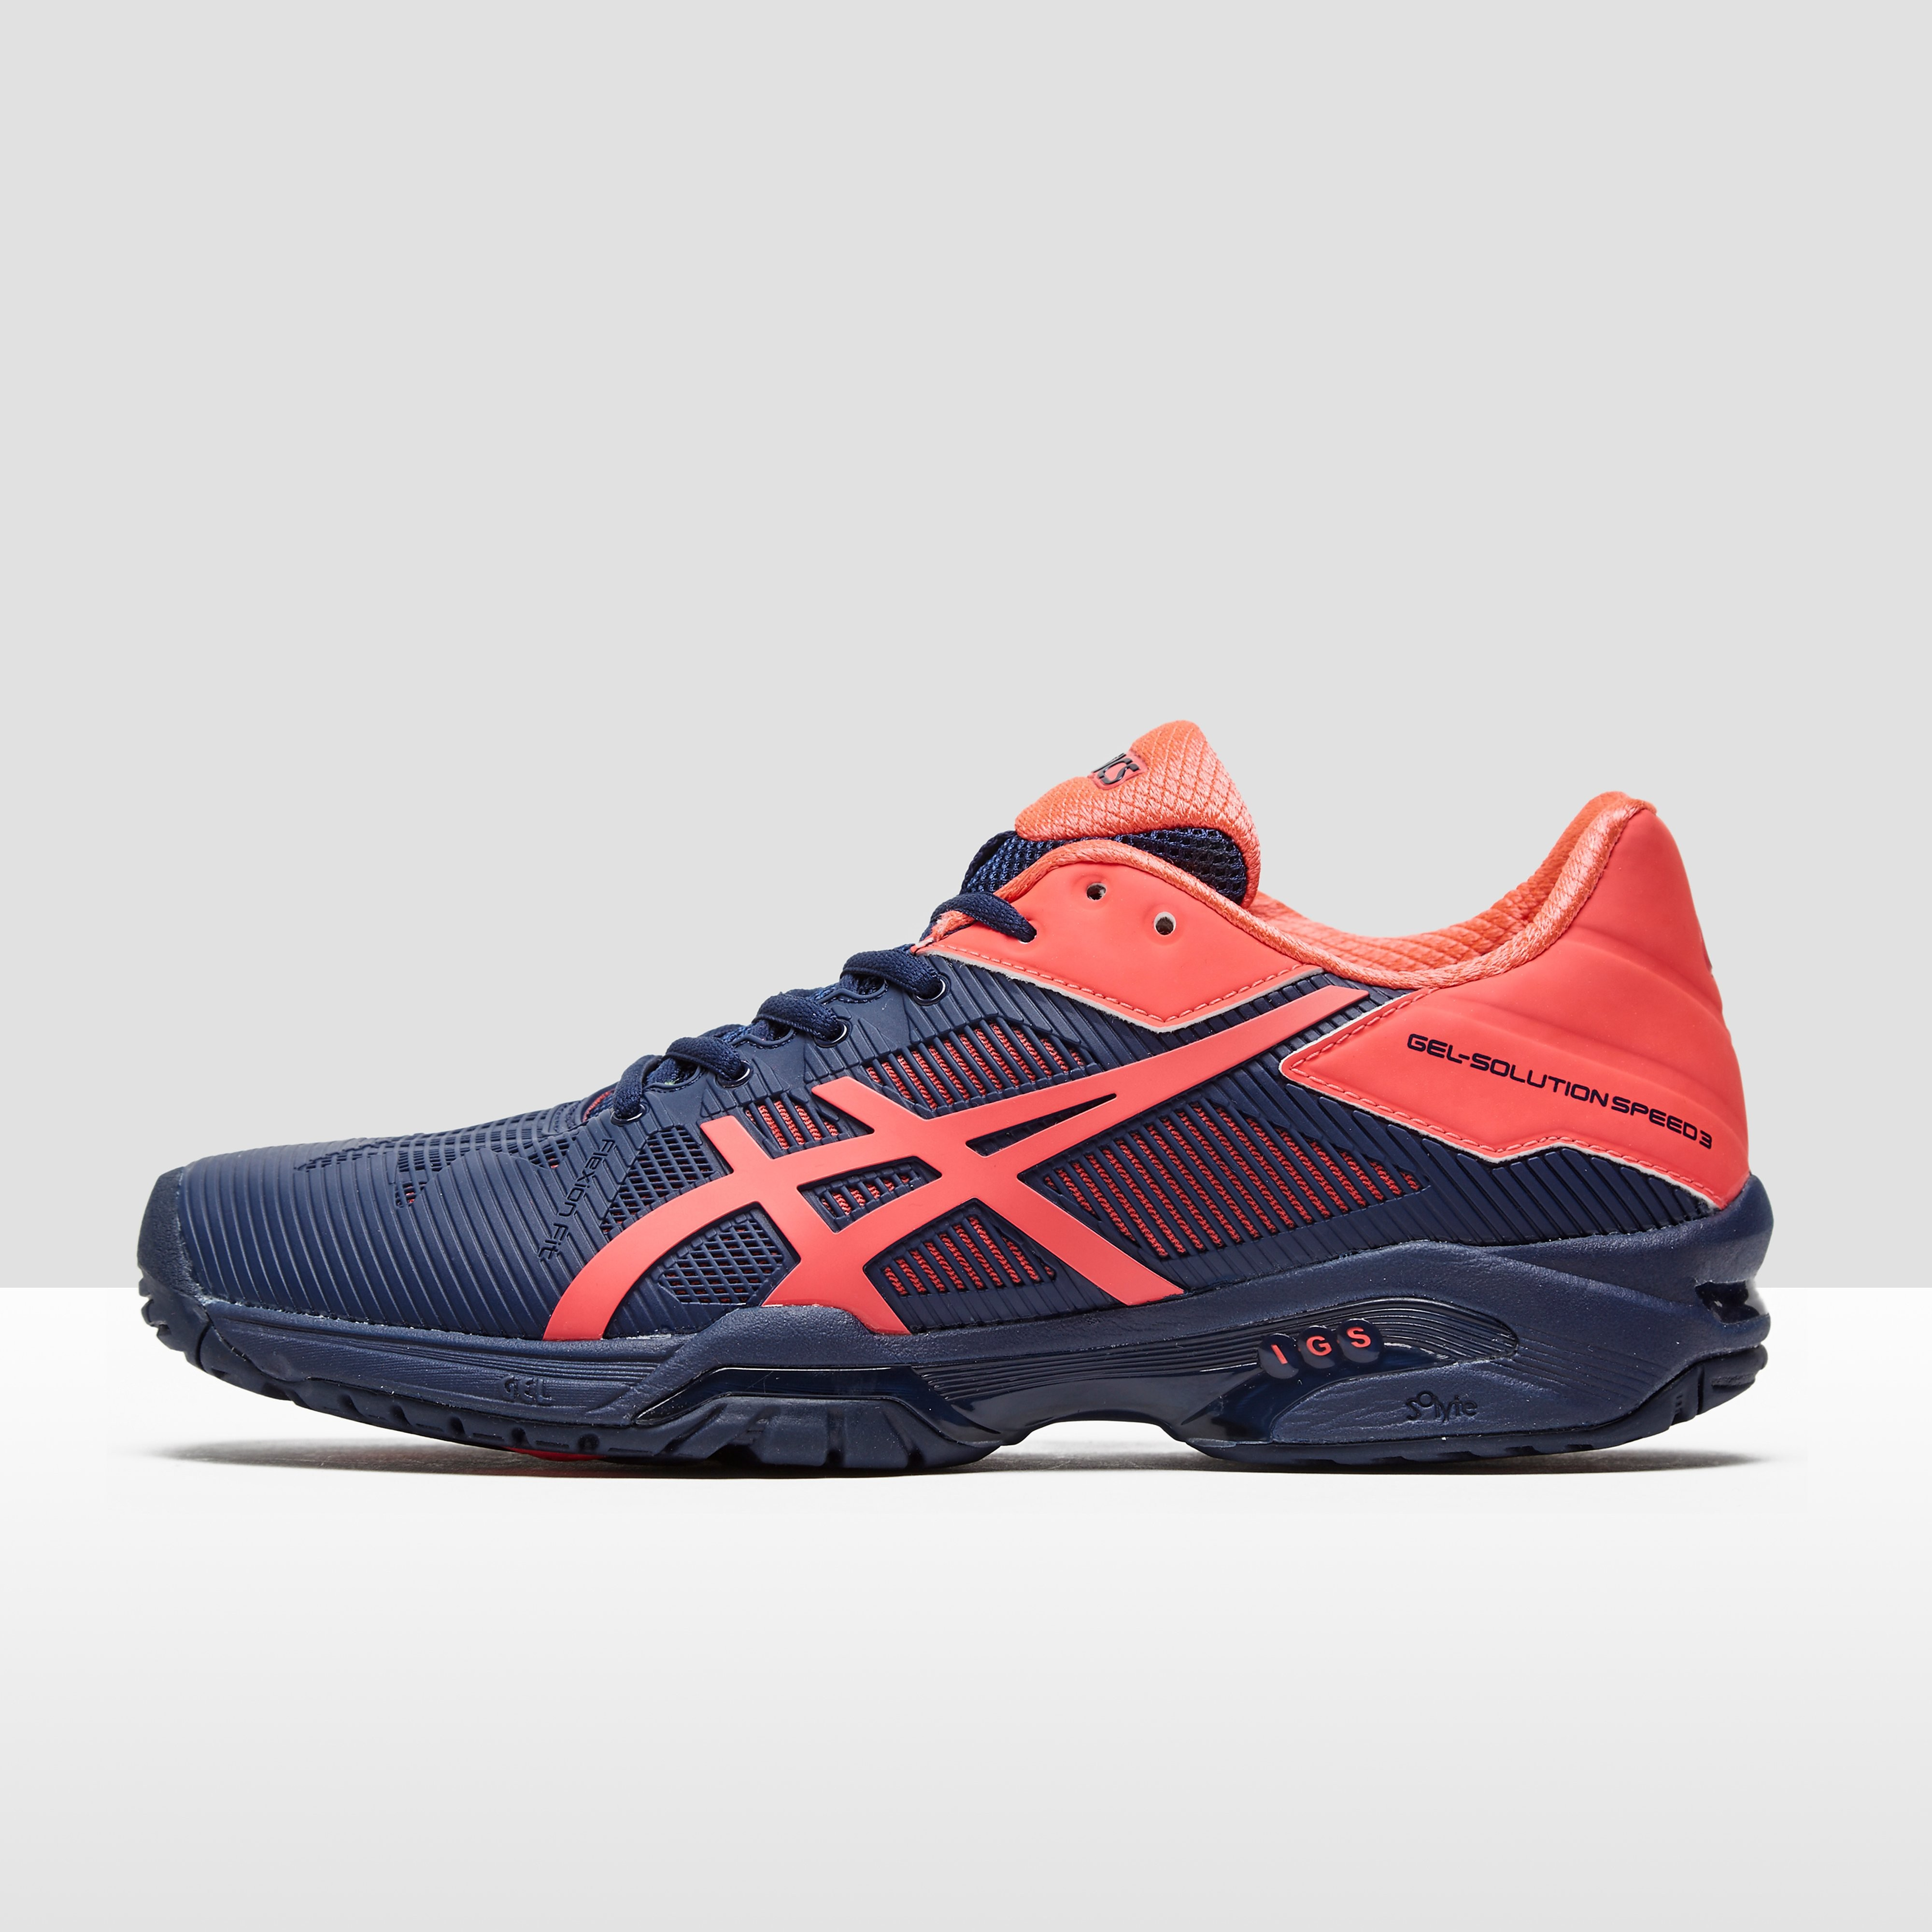 ASICS GEL-Solution Speed 3 Women's Tennis Shoes